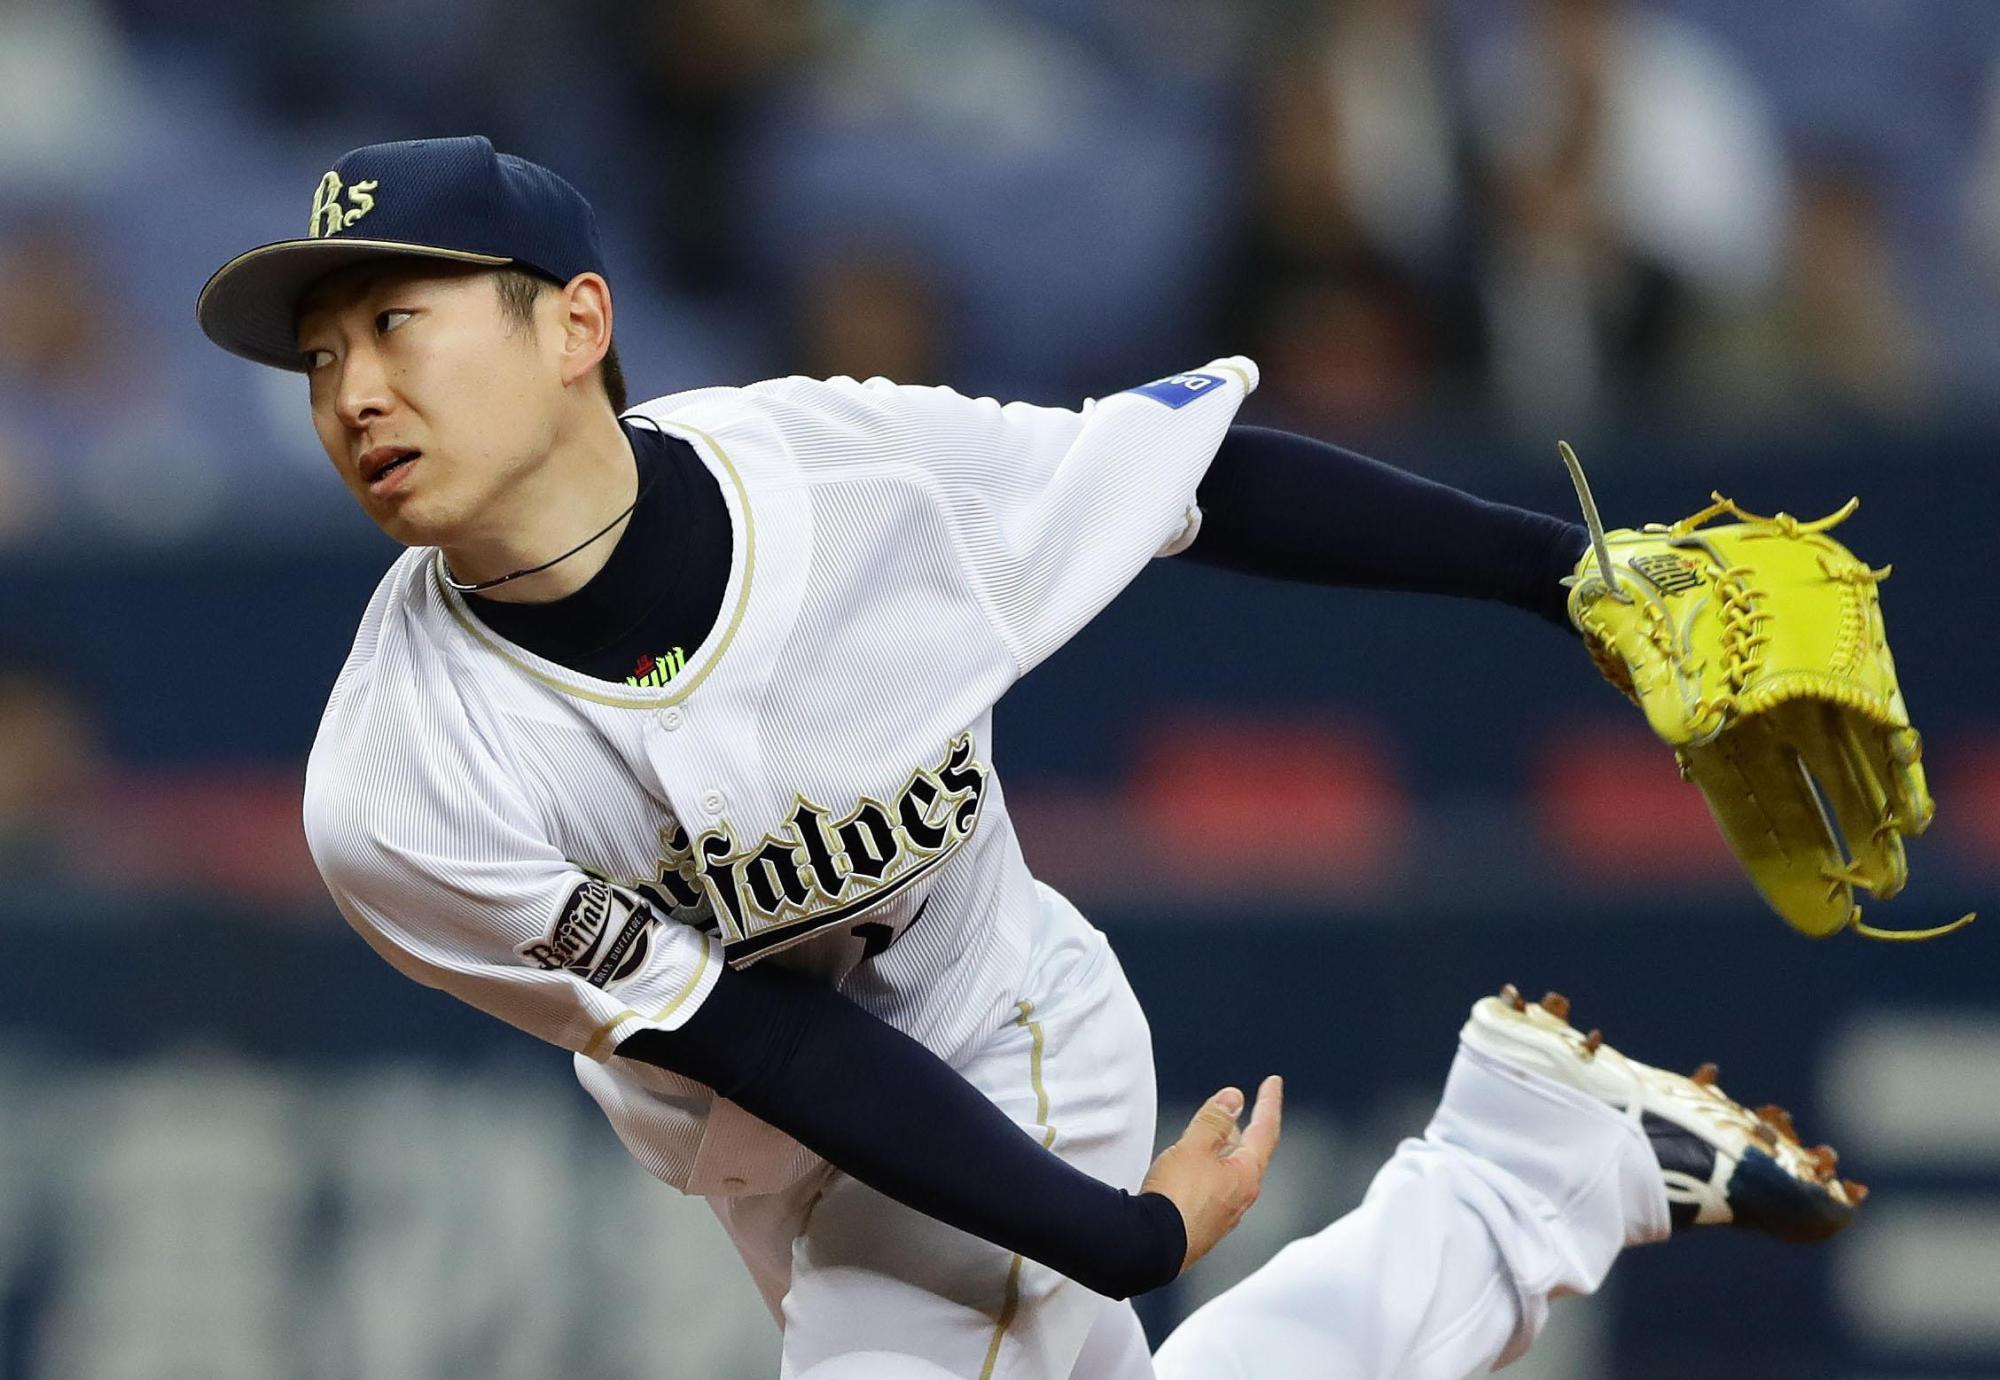 Buffaloes starter Chihiro Kaneko delivers a pitch during Orix's win over the Lions on Wednesday. | KYODO